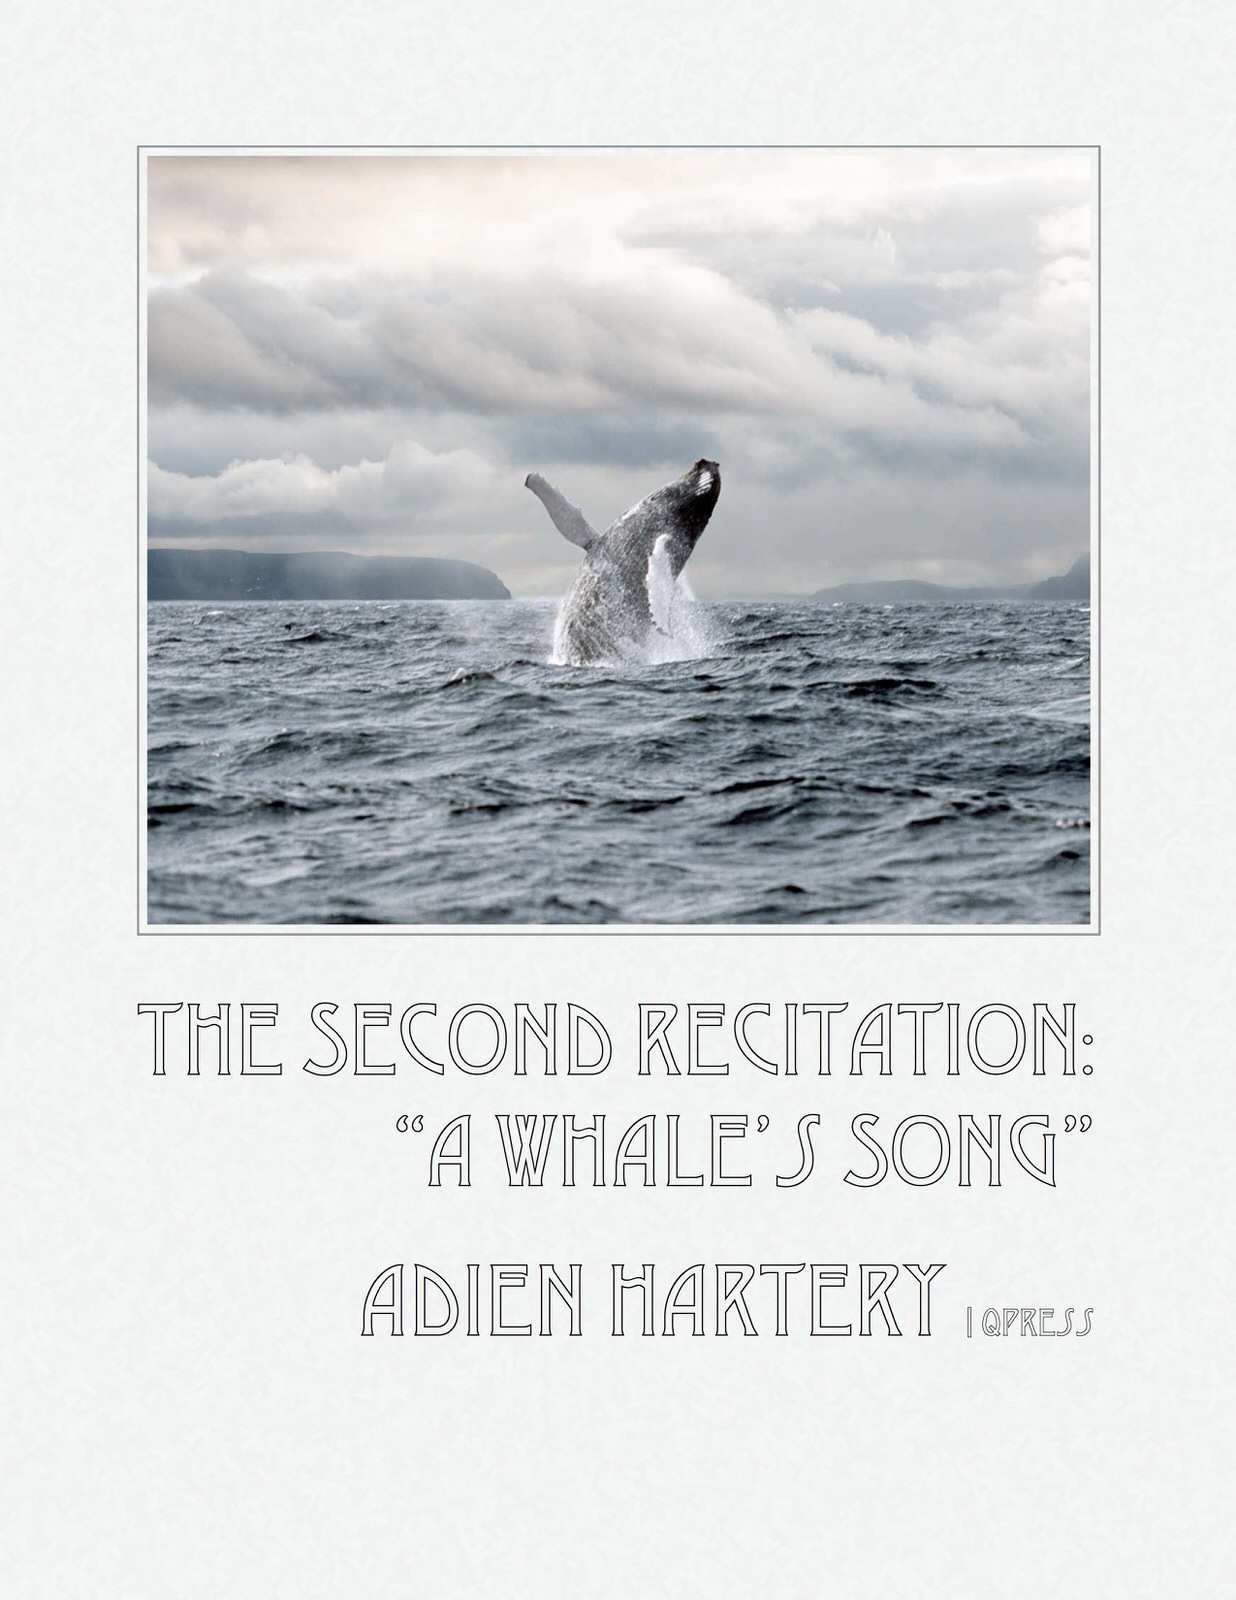 Hartery, The Second Recitation, A Whale's Song-p1